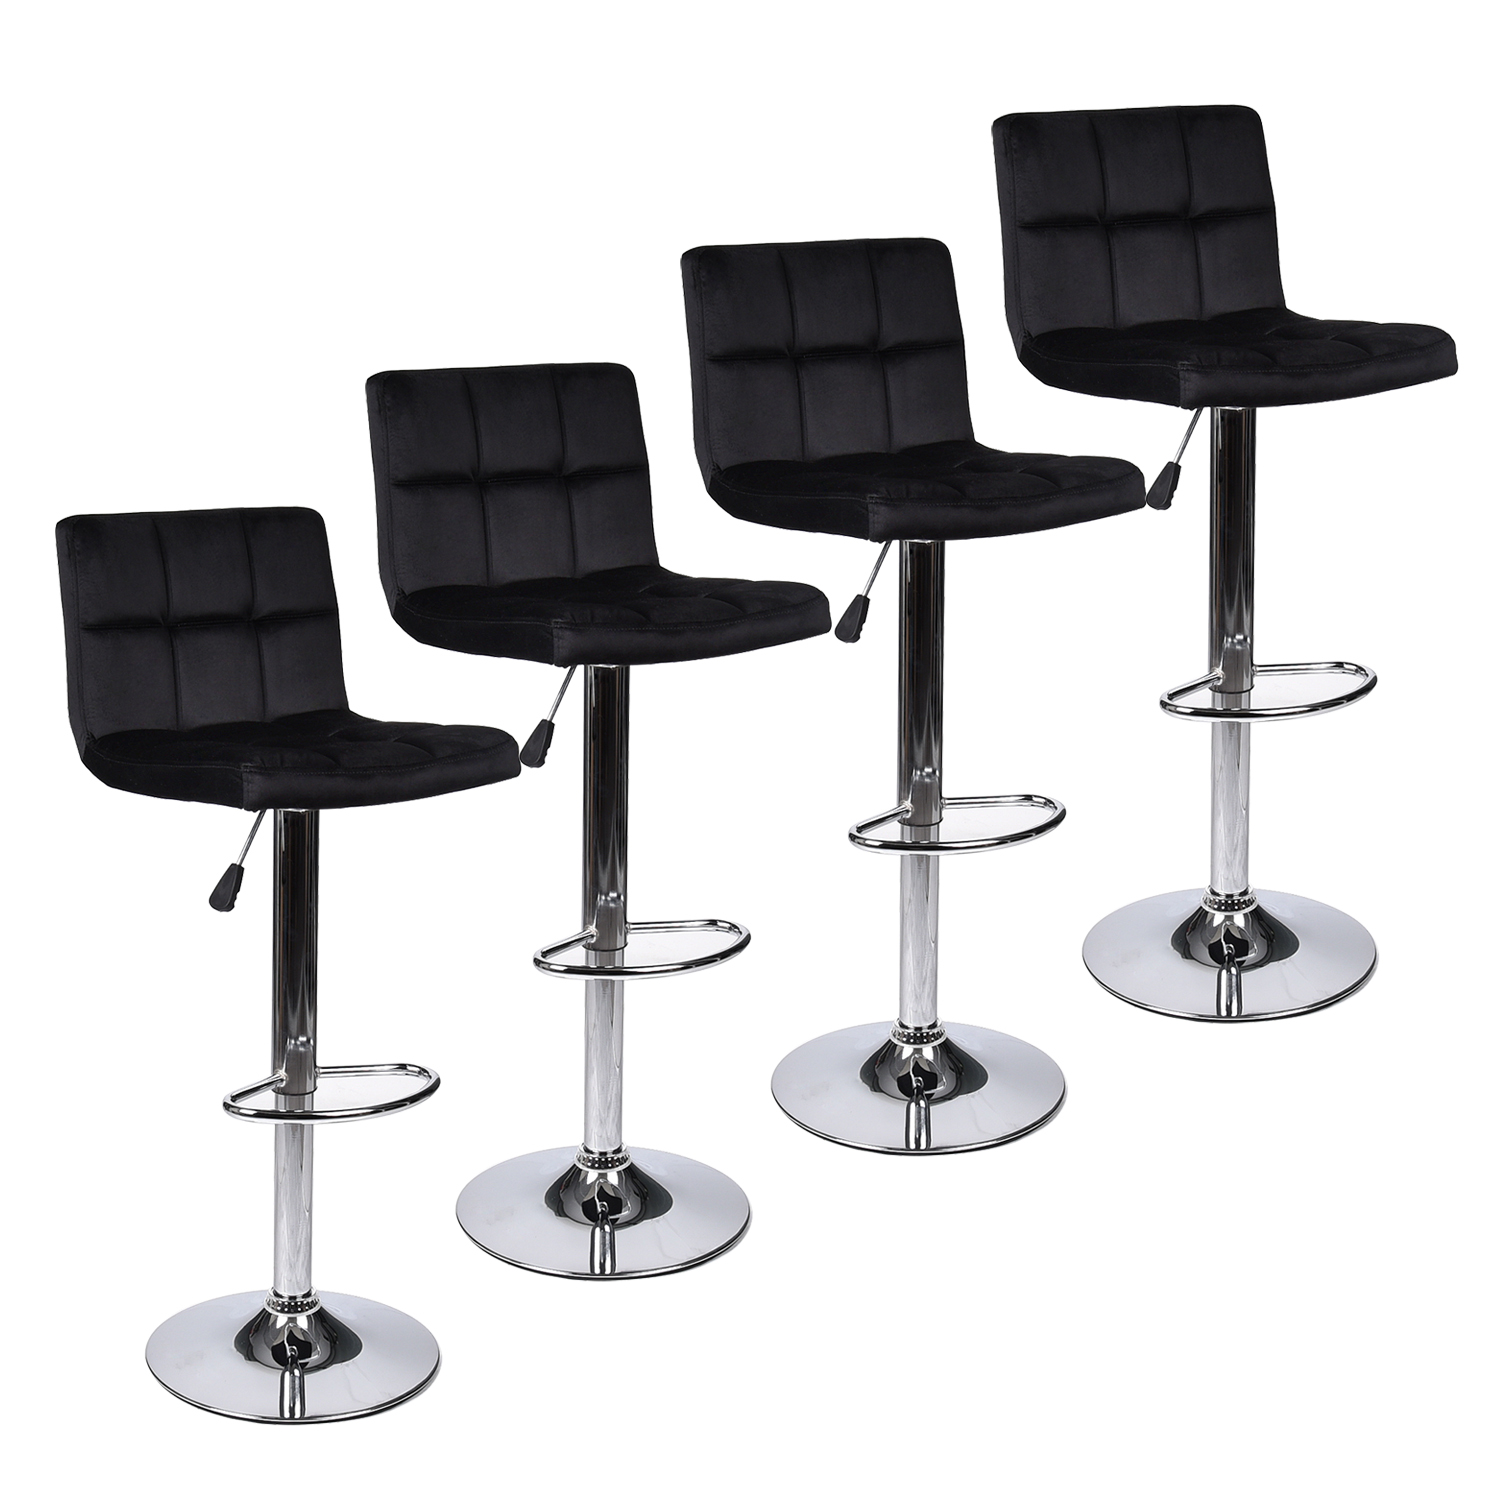 Pleasing Details About Set Of 4 Bar Stools Hydraulic Adjustable Swivel Velvet Fabric Counter Chairs Pub Short Links Chair Design For Home Short Linksinfo